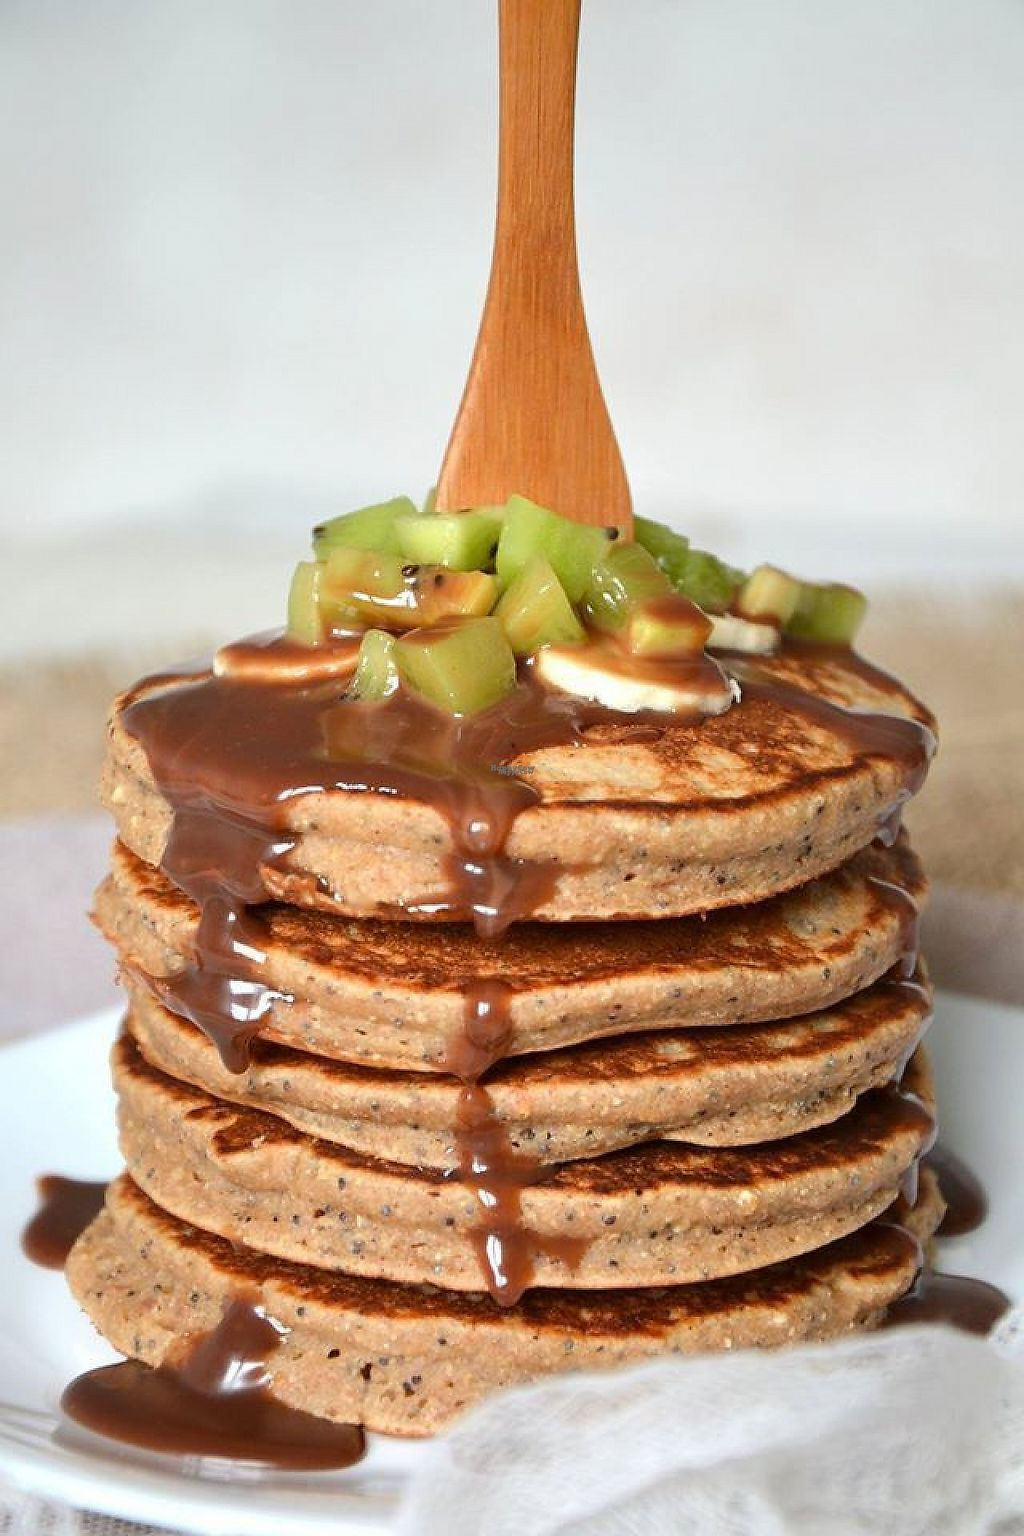 """Photo of La Vie Claire  by <a href=""""/members/profile/community"""">community</a> <br/>vegan pancake  <br/> February 4, 2017  - <a href='/contact/abuse/image/72004/221853'>Report</a>"""